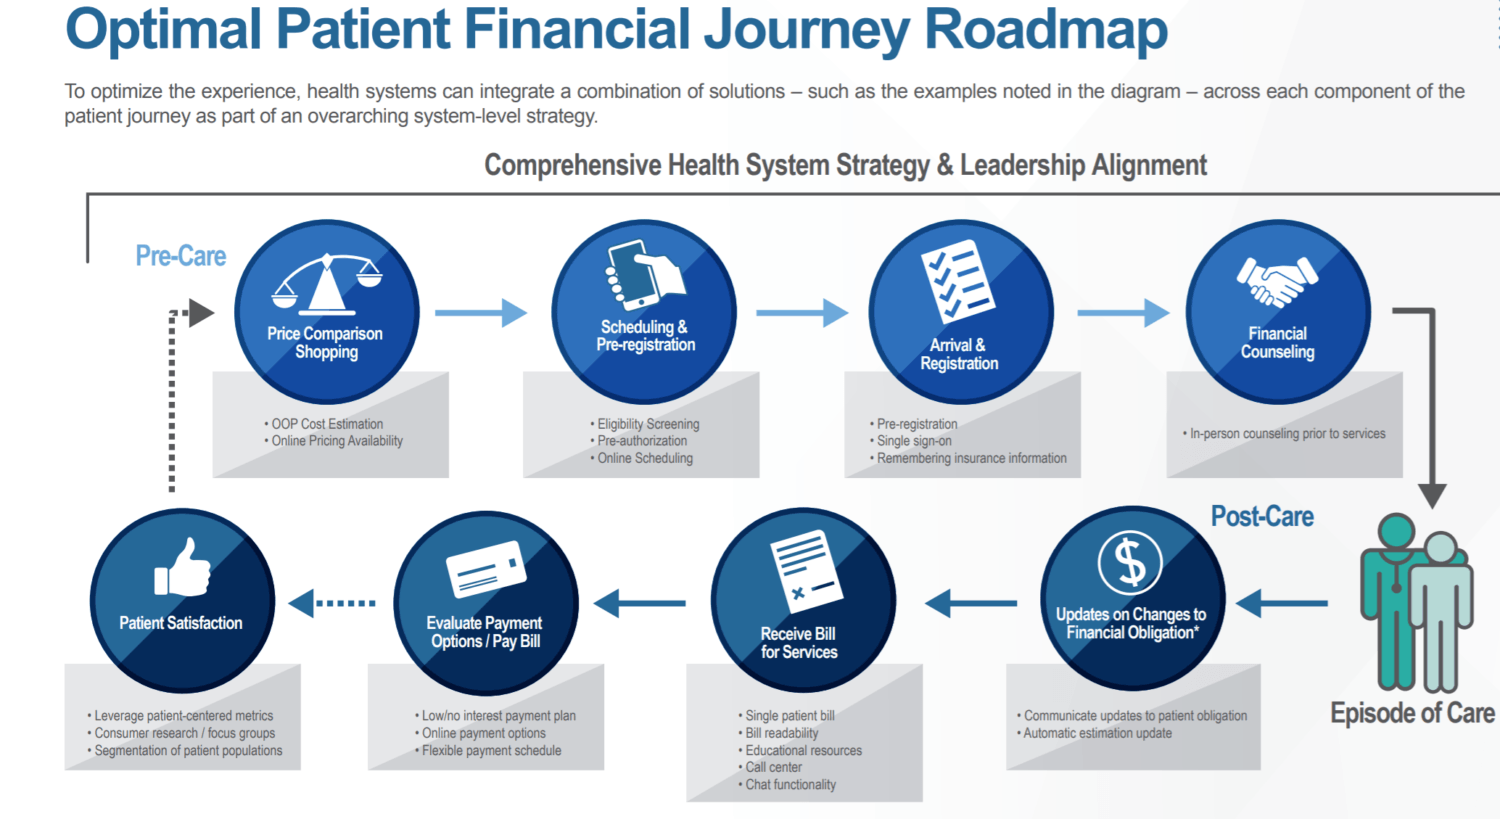 Report Health Systems Are Struggling to Simplify Patient